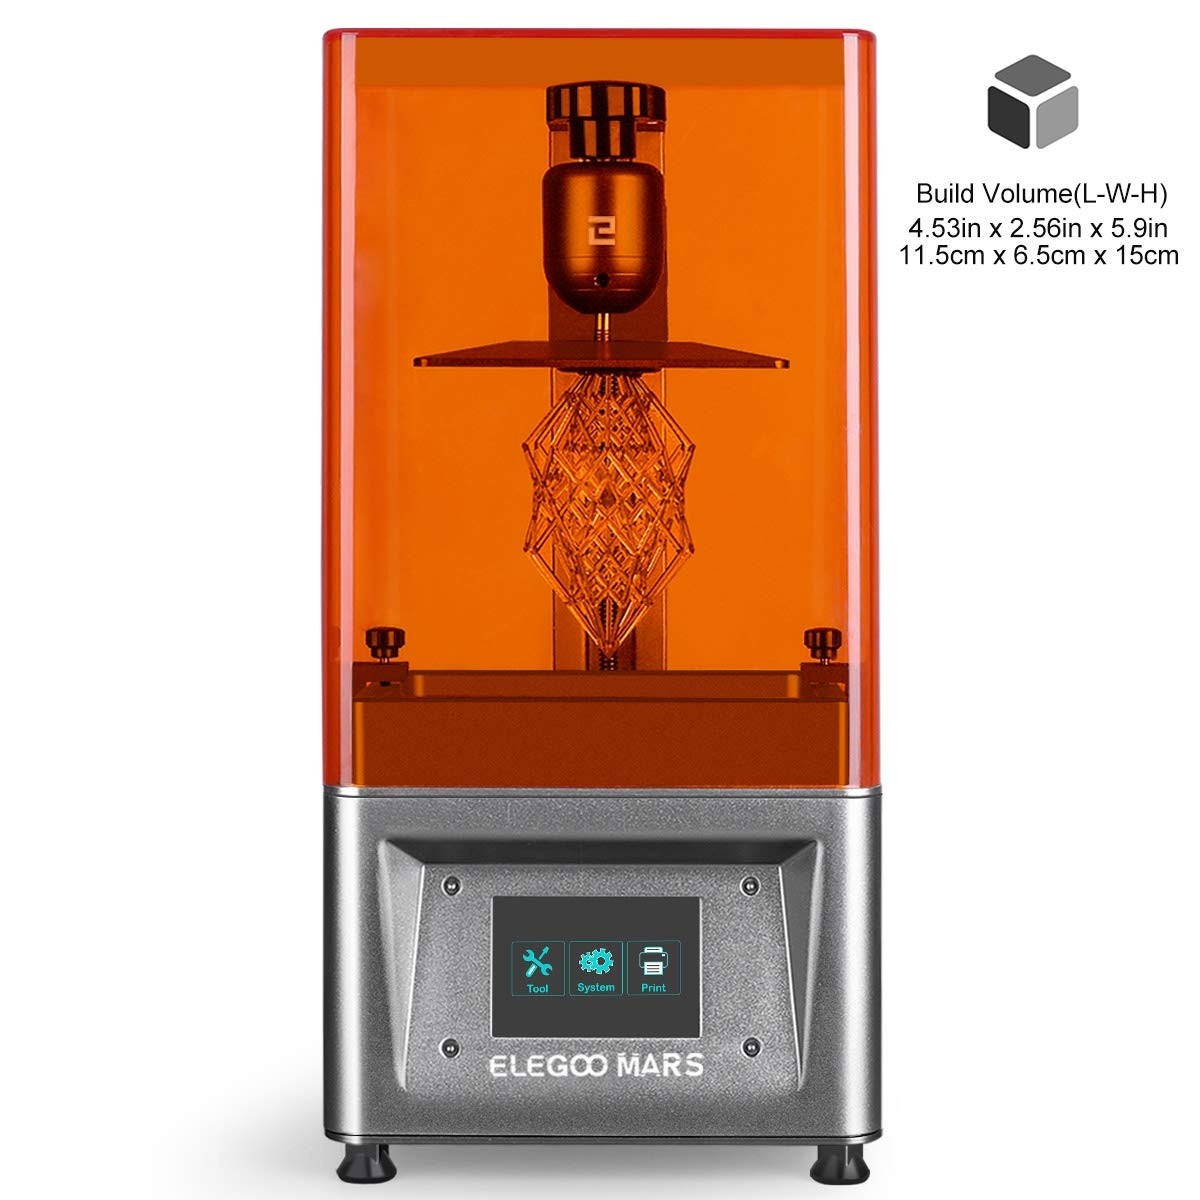 ELEGOO Mars UV Photocuring LCD 3D Printer Silver with 3.5'' Smart Touch Color Screen